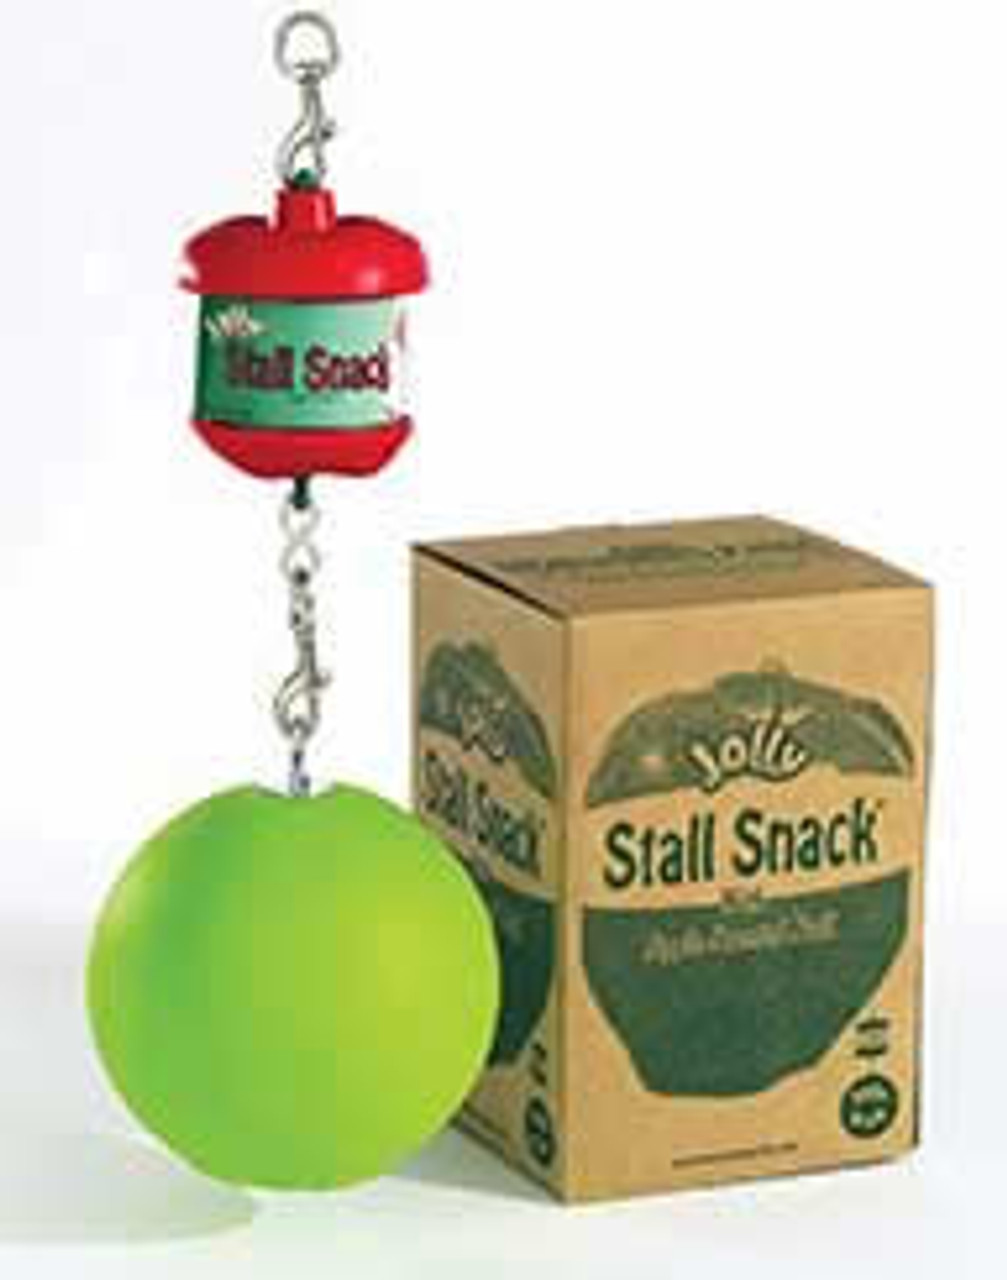 Horsemens Pride Stall Snack Holder with Apple-Scented Jolly Ball for Horses